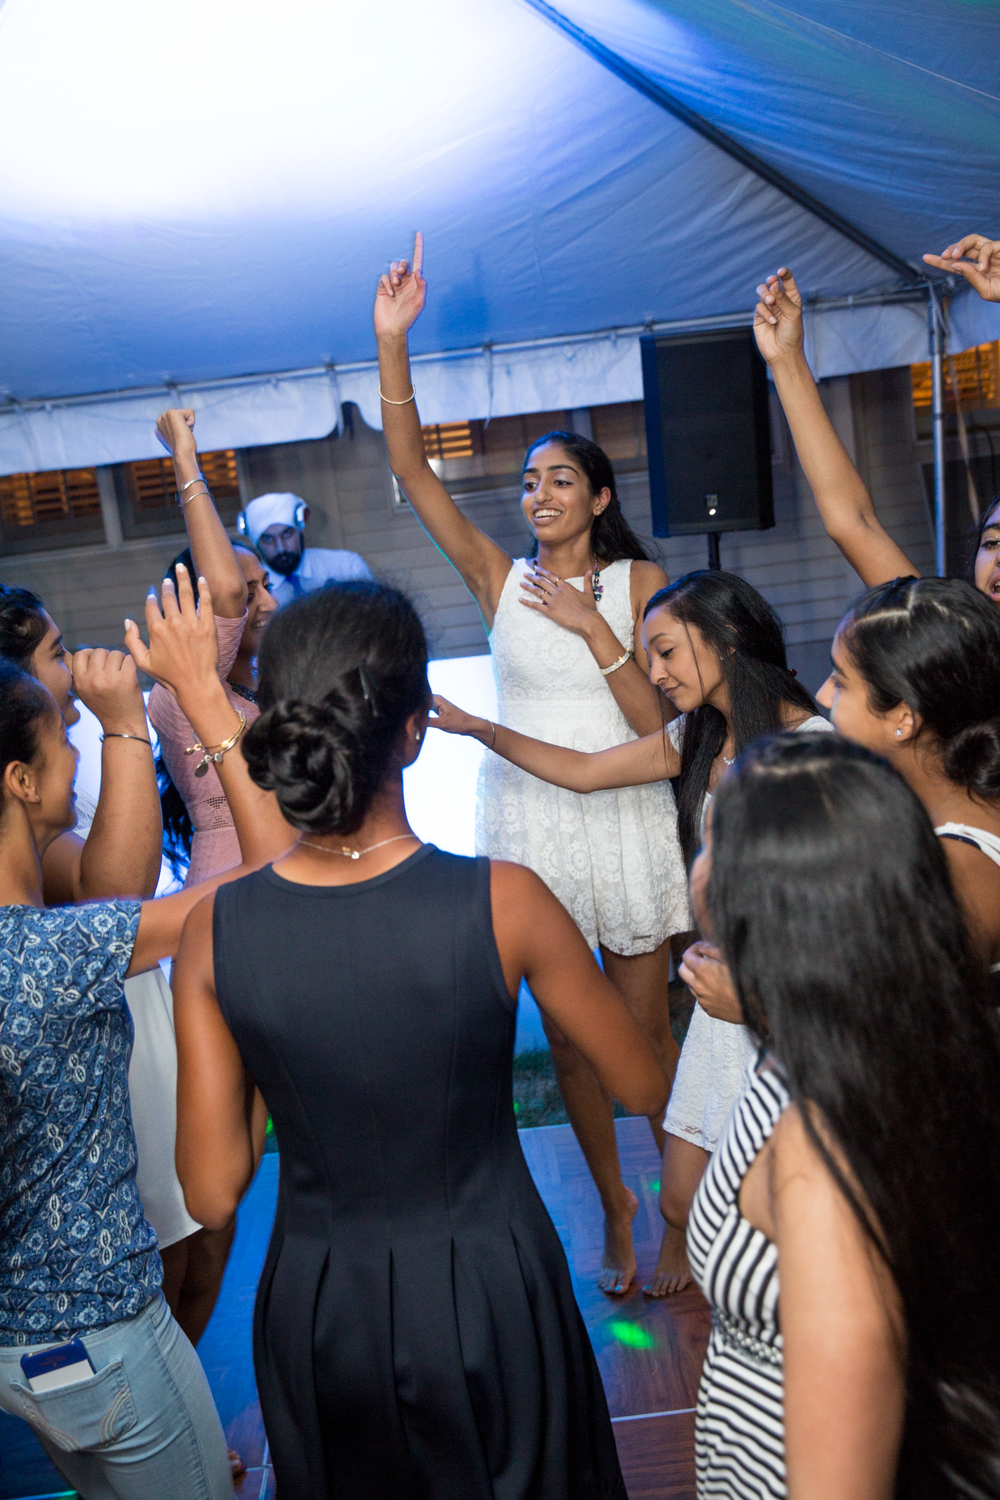 34-William Hendra Photography Singh Graduation Party.jpg